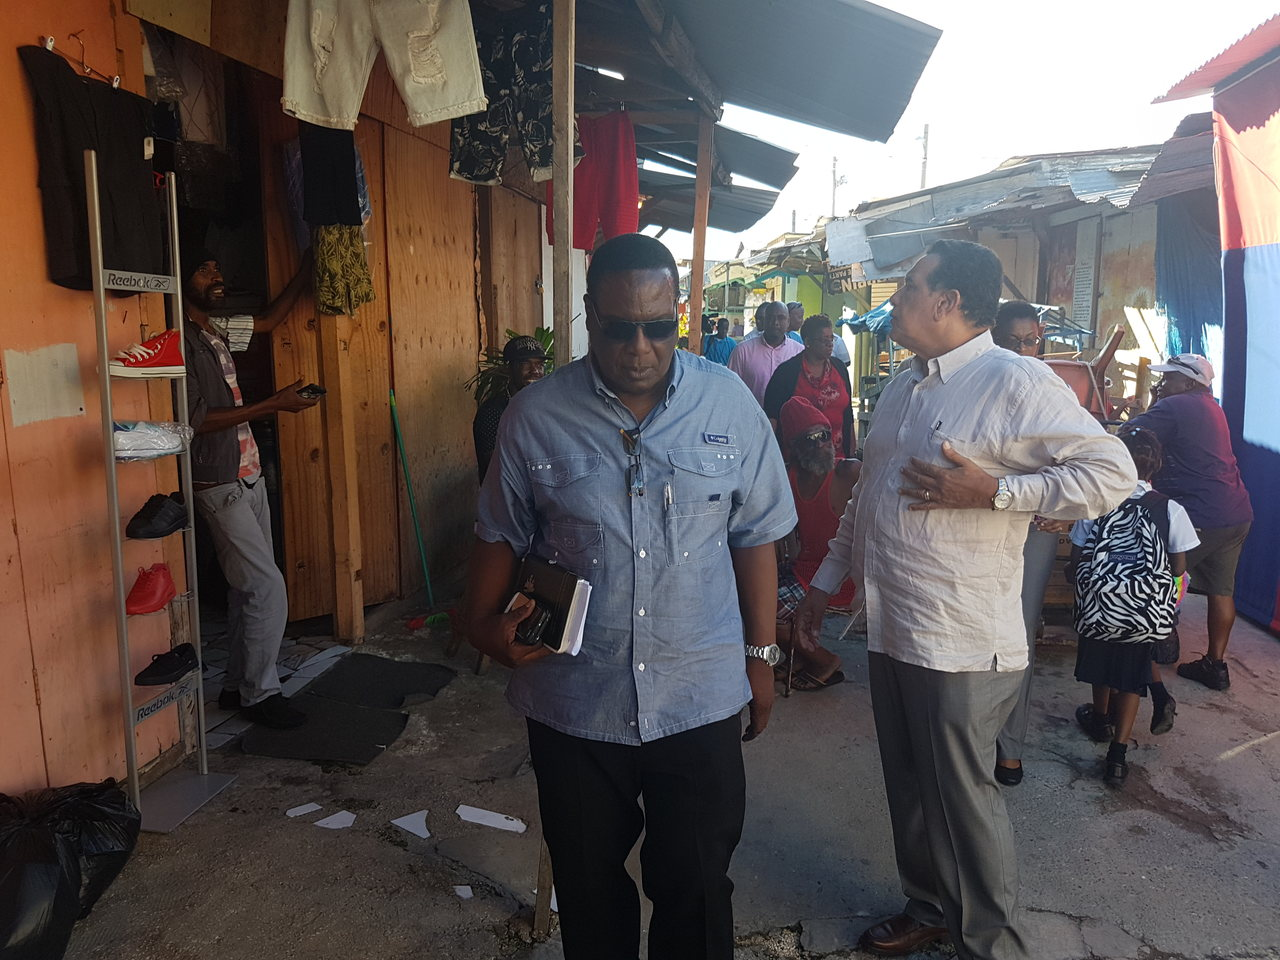 Mayor of Montego Bay, Homer Davis (right), and his Deputy, Leroy Williams, during a tour of the Old Shoes Market in Montego Bay on Monday.